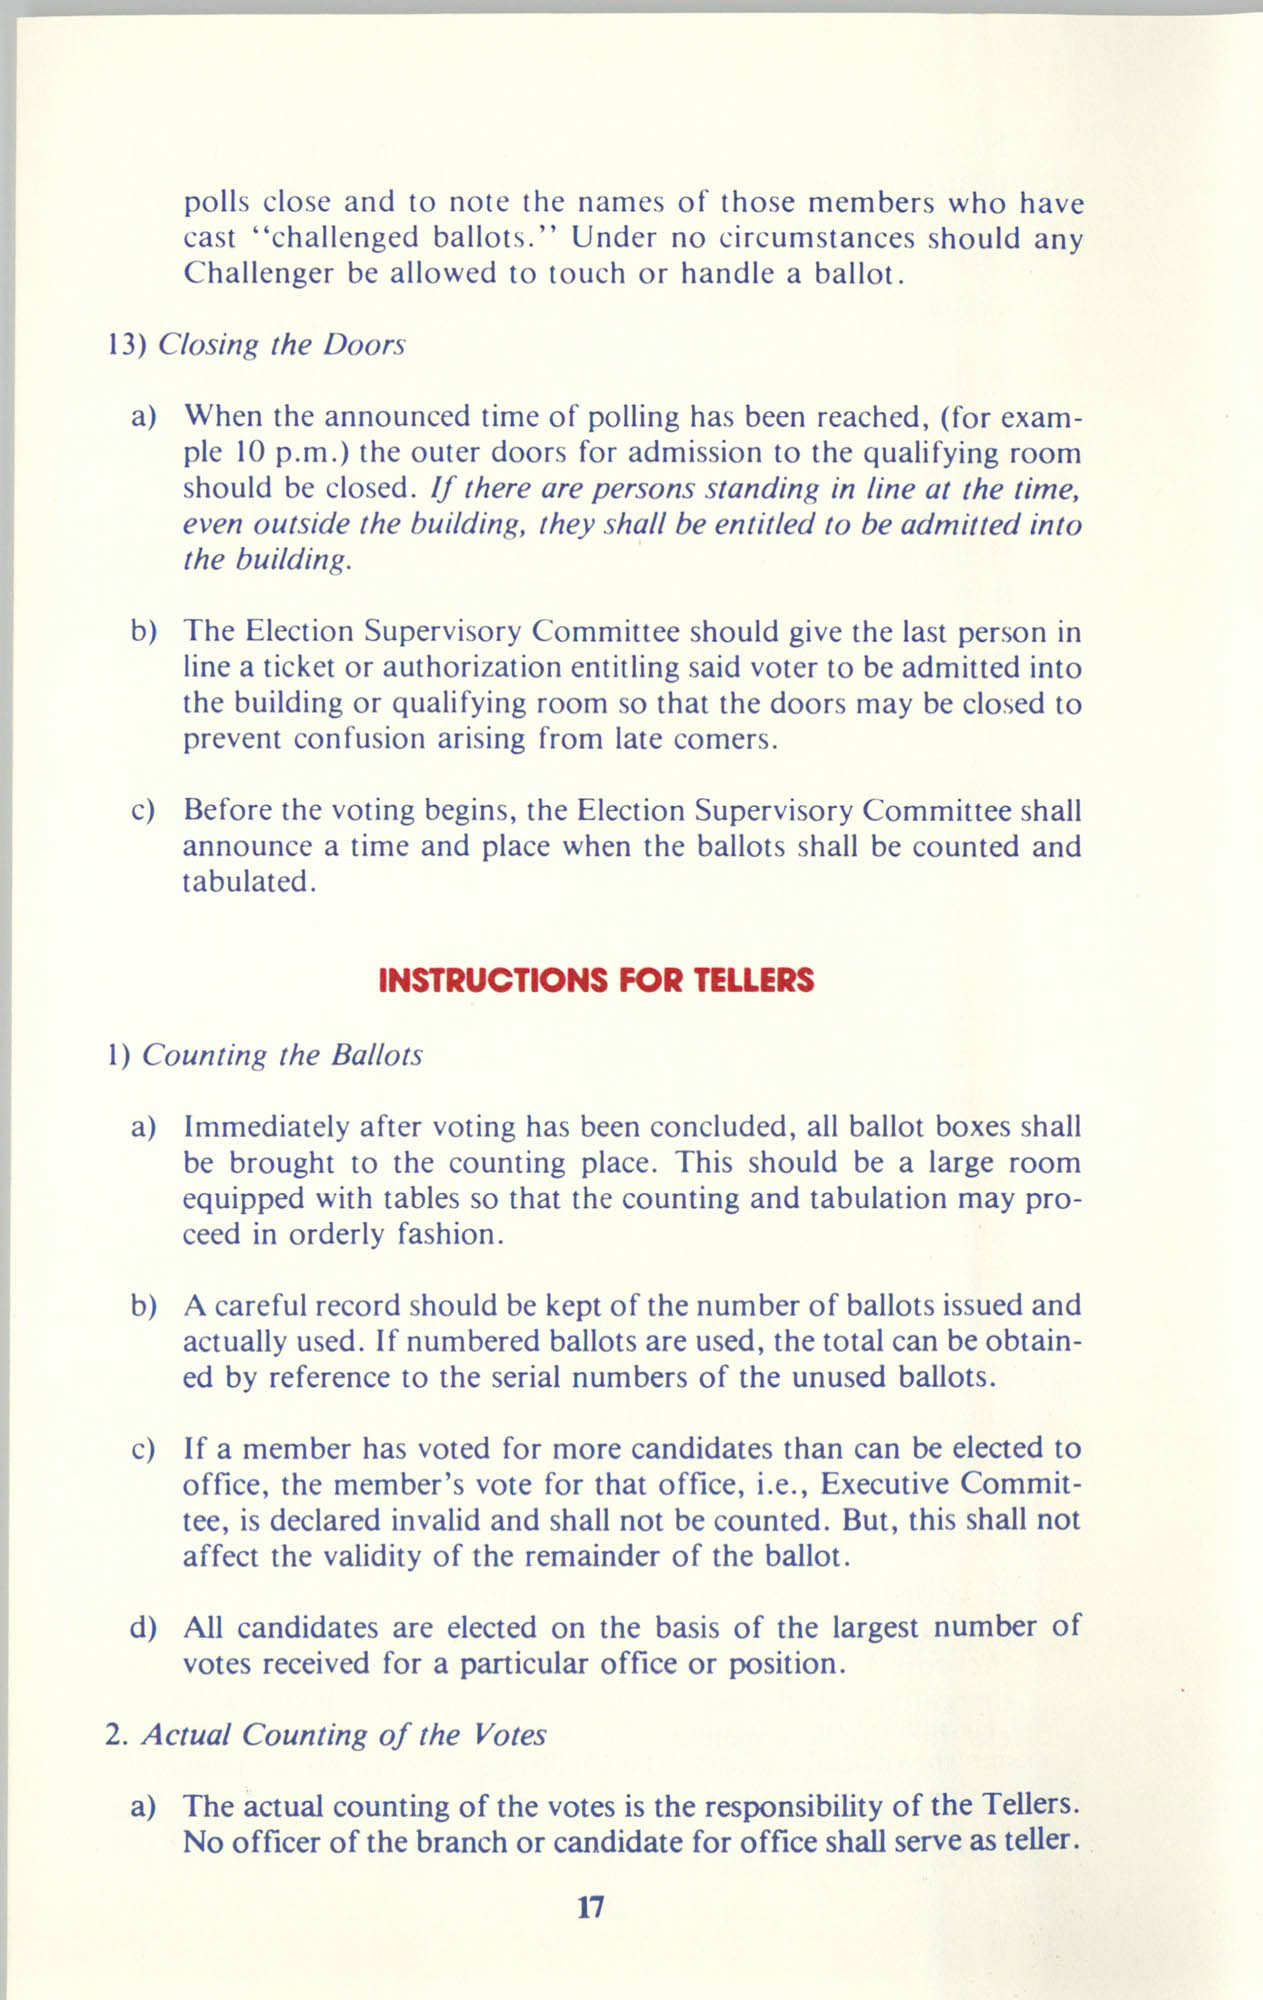 Manual on Branch Election Procedure, Page 17